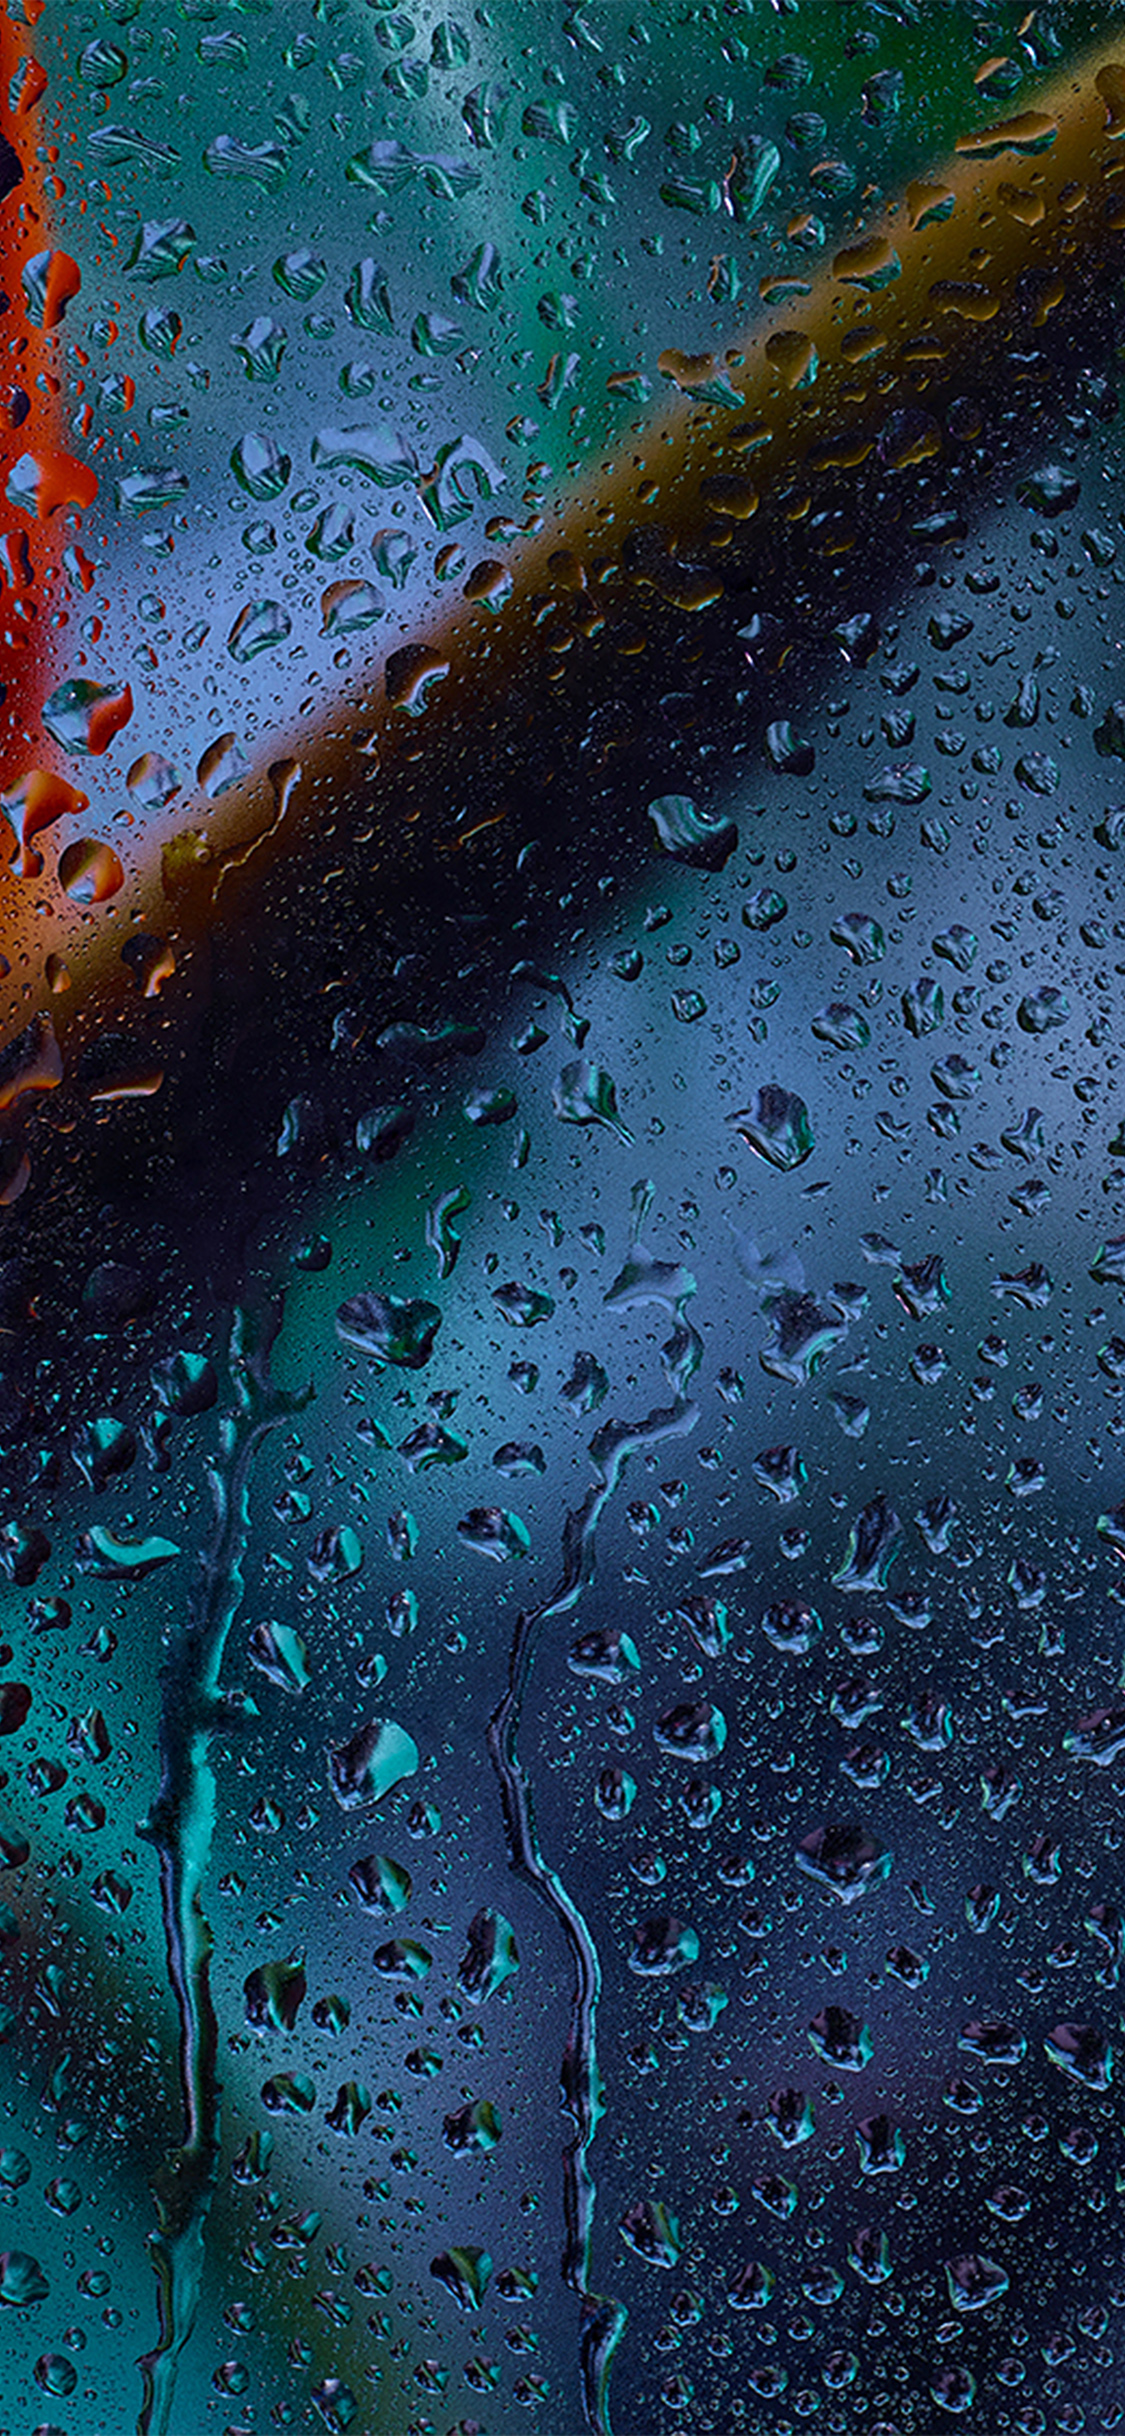 iphonexpapers com iphone x wallpaper vx51 rain blue pattern